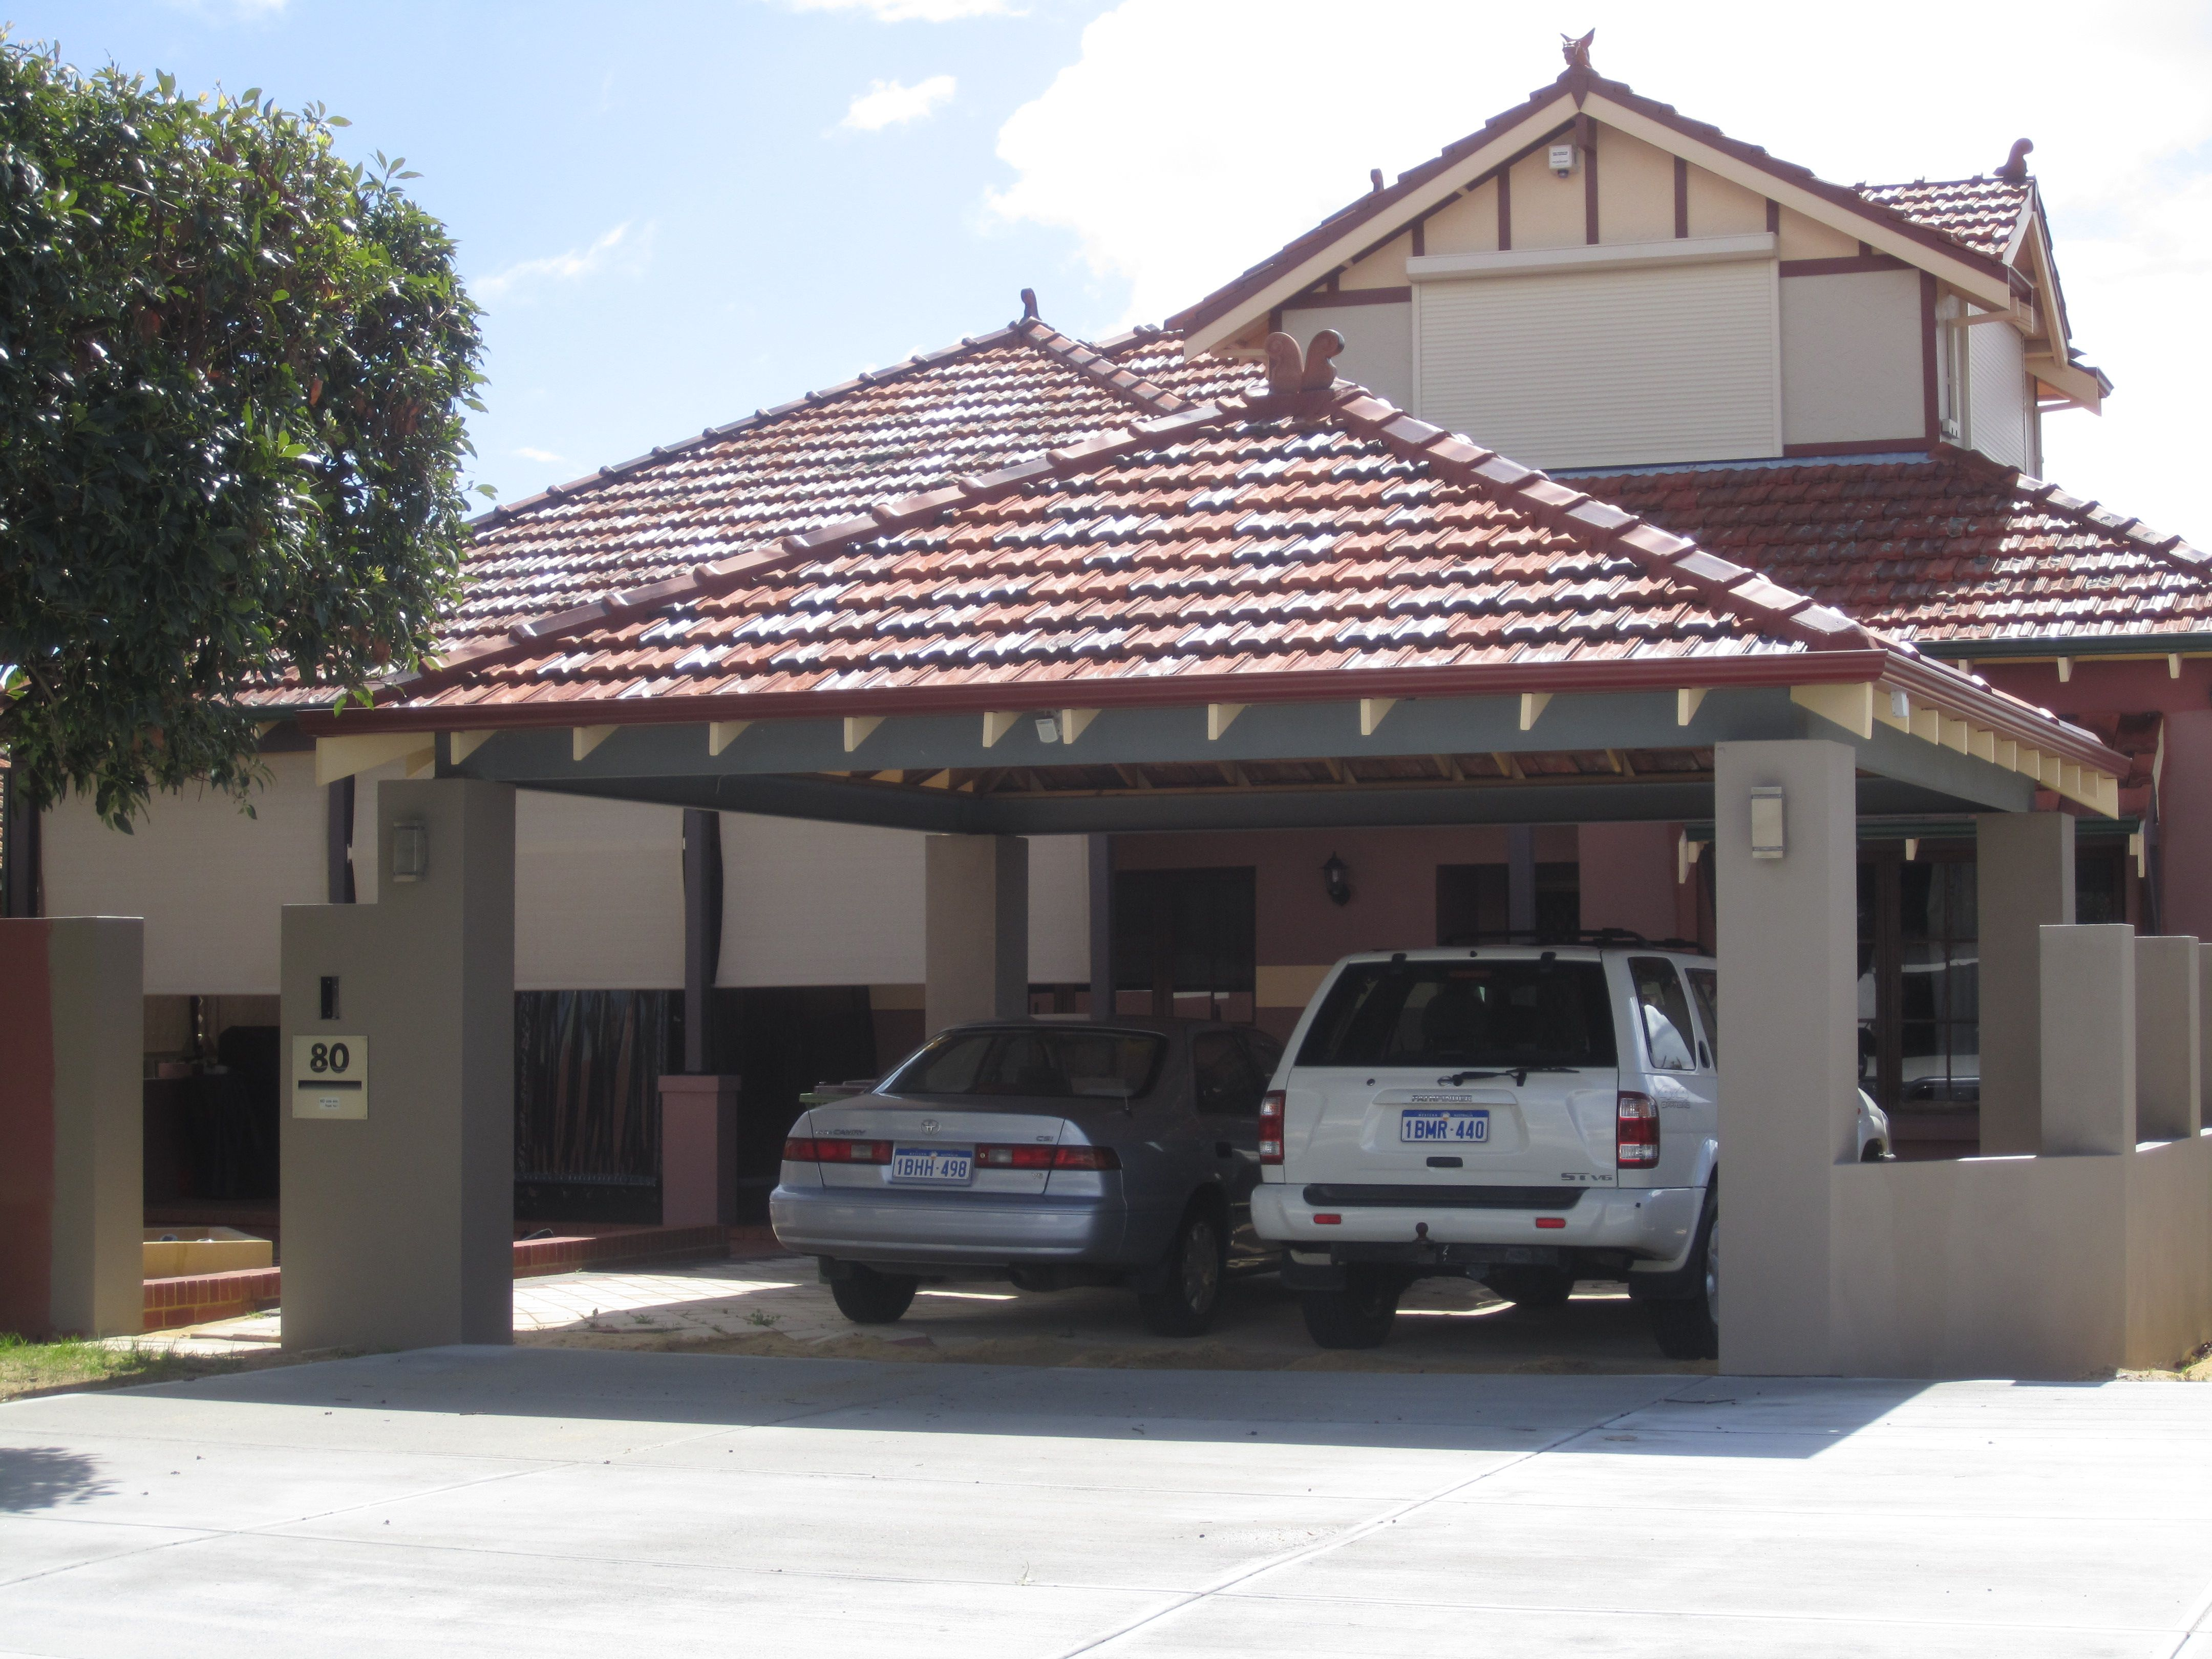 How to decorate your carport - How To Decorate Your Carport 20